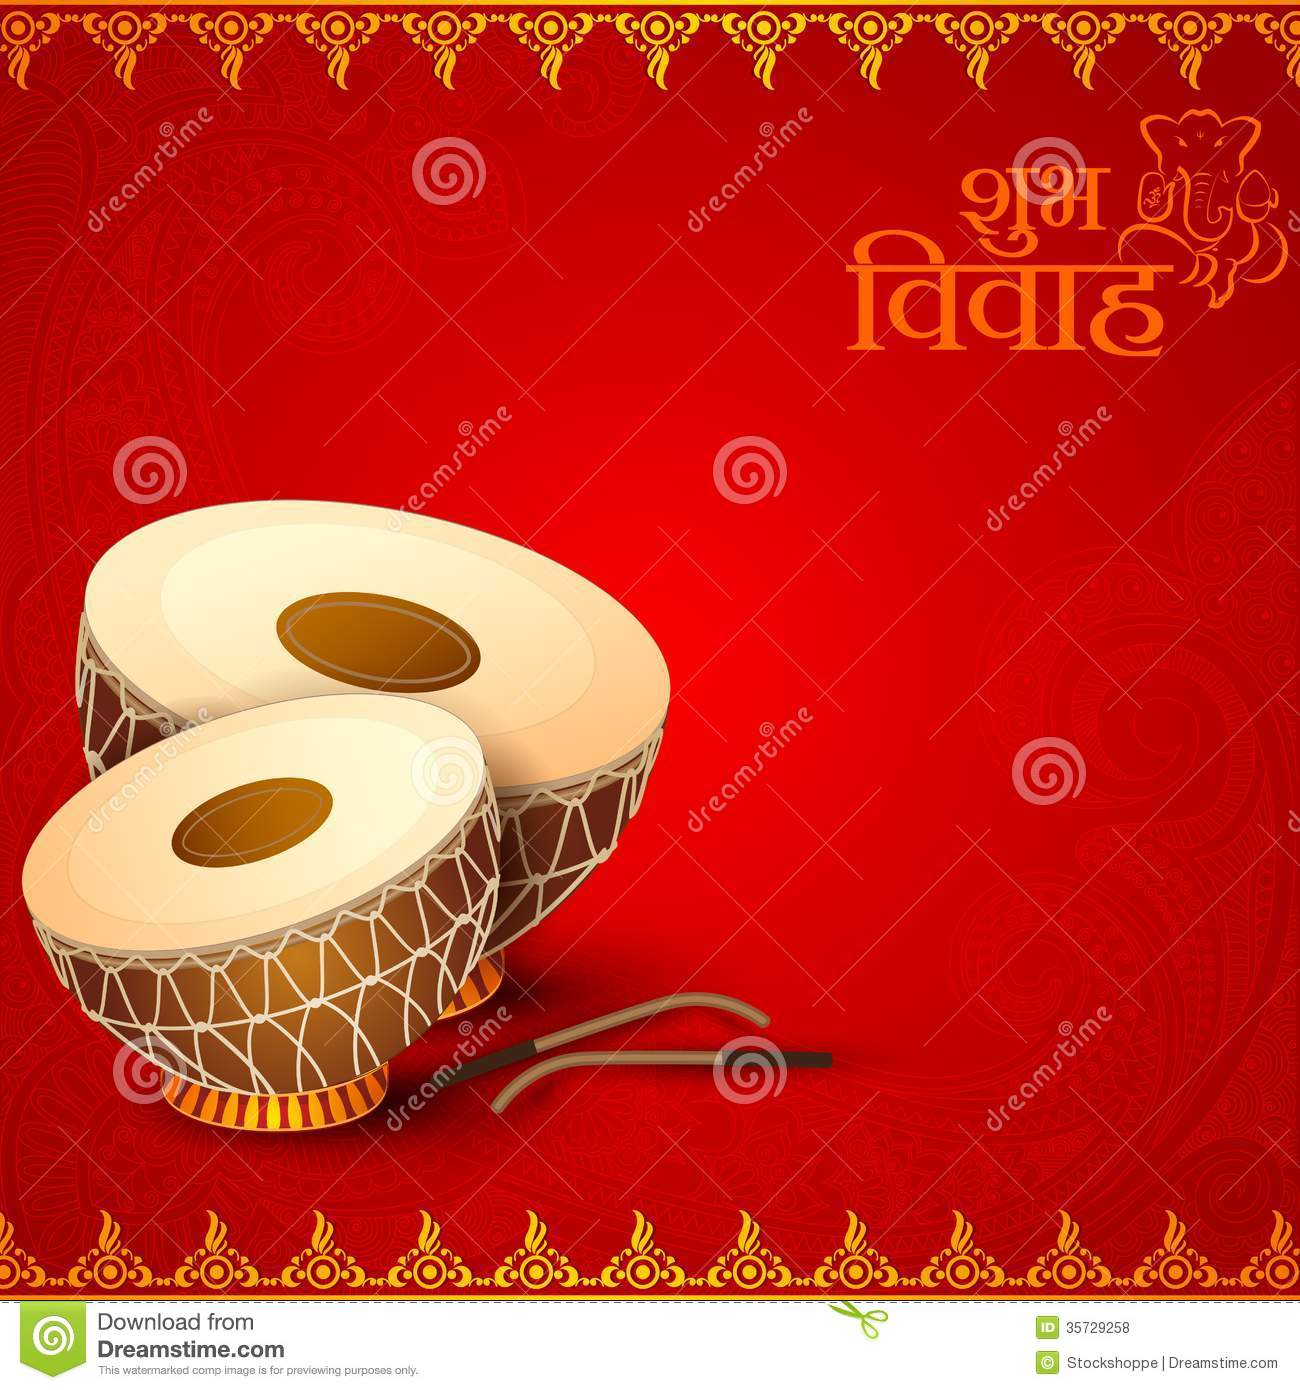 Drum In Indian Wedding Invitation Card Stock Vector Illustration